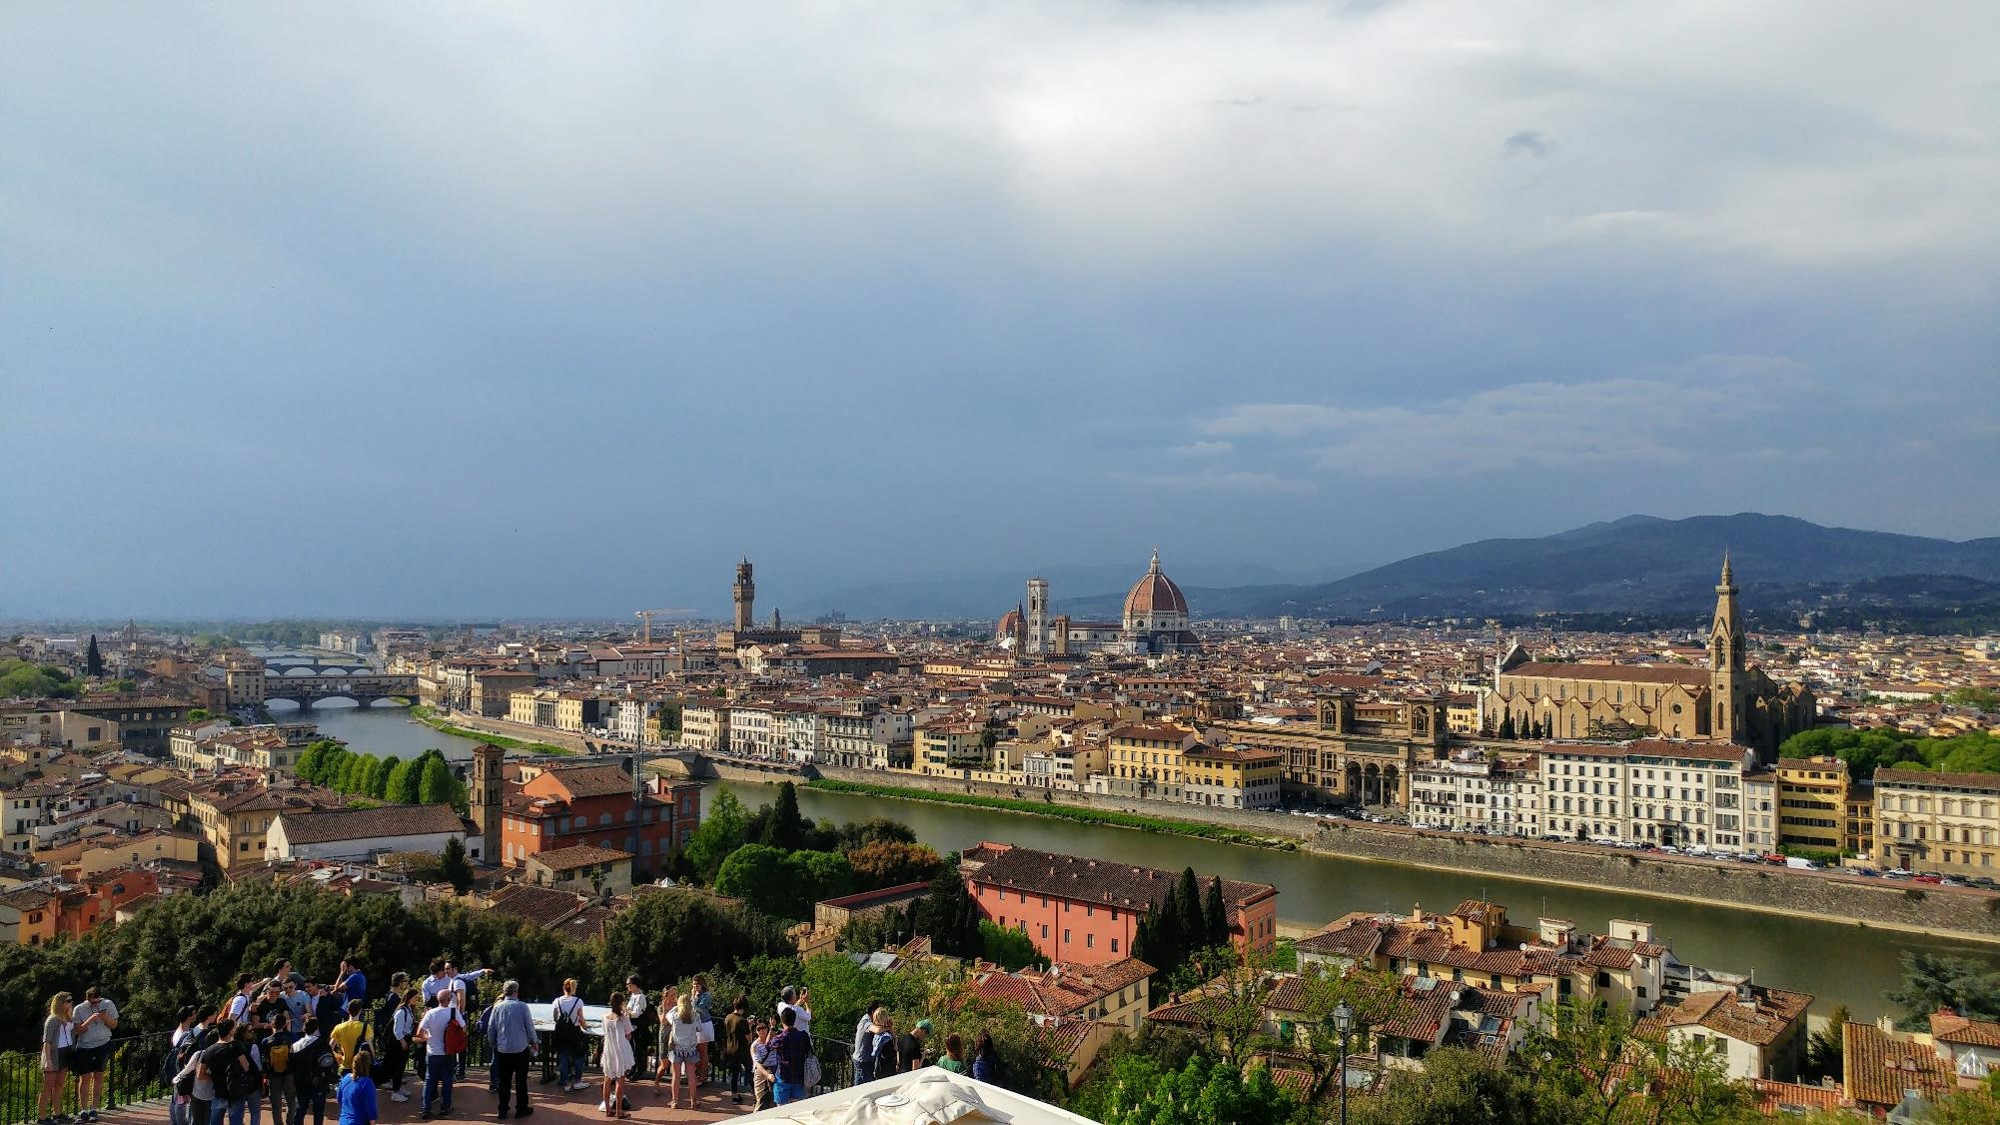 Florence: looking out from Piazzale Michelangelo